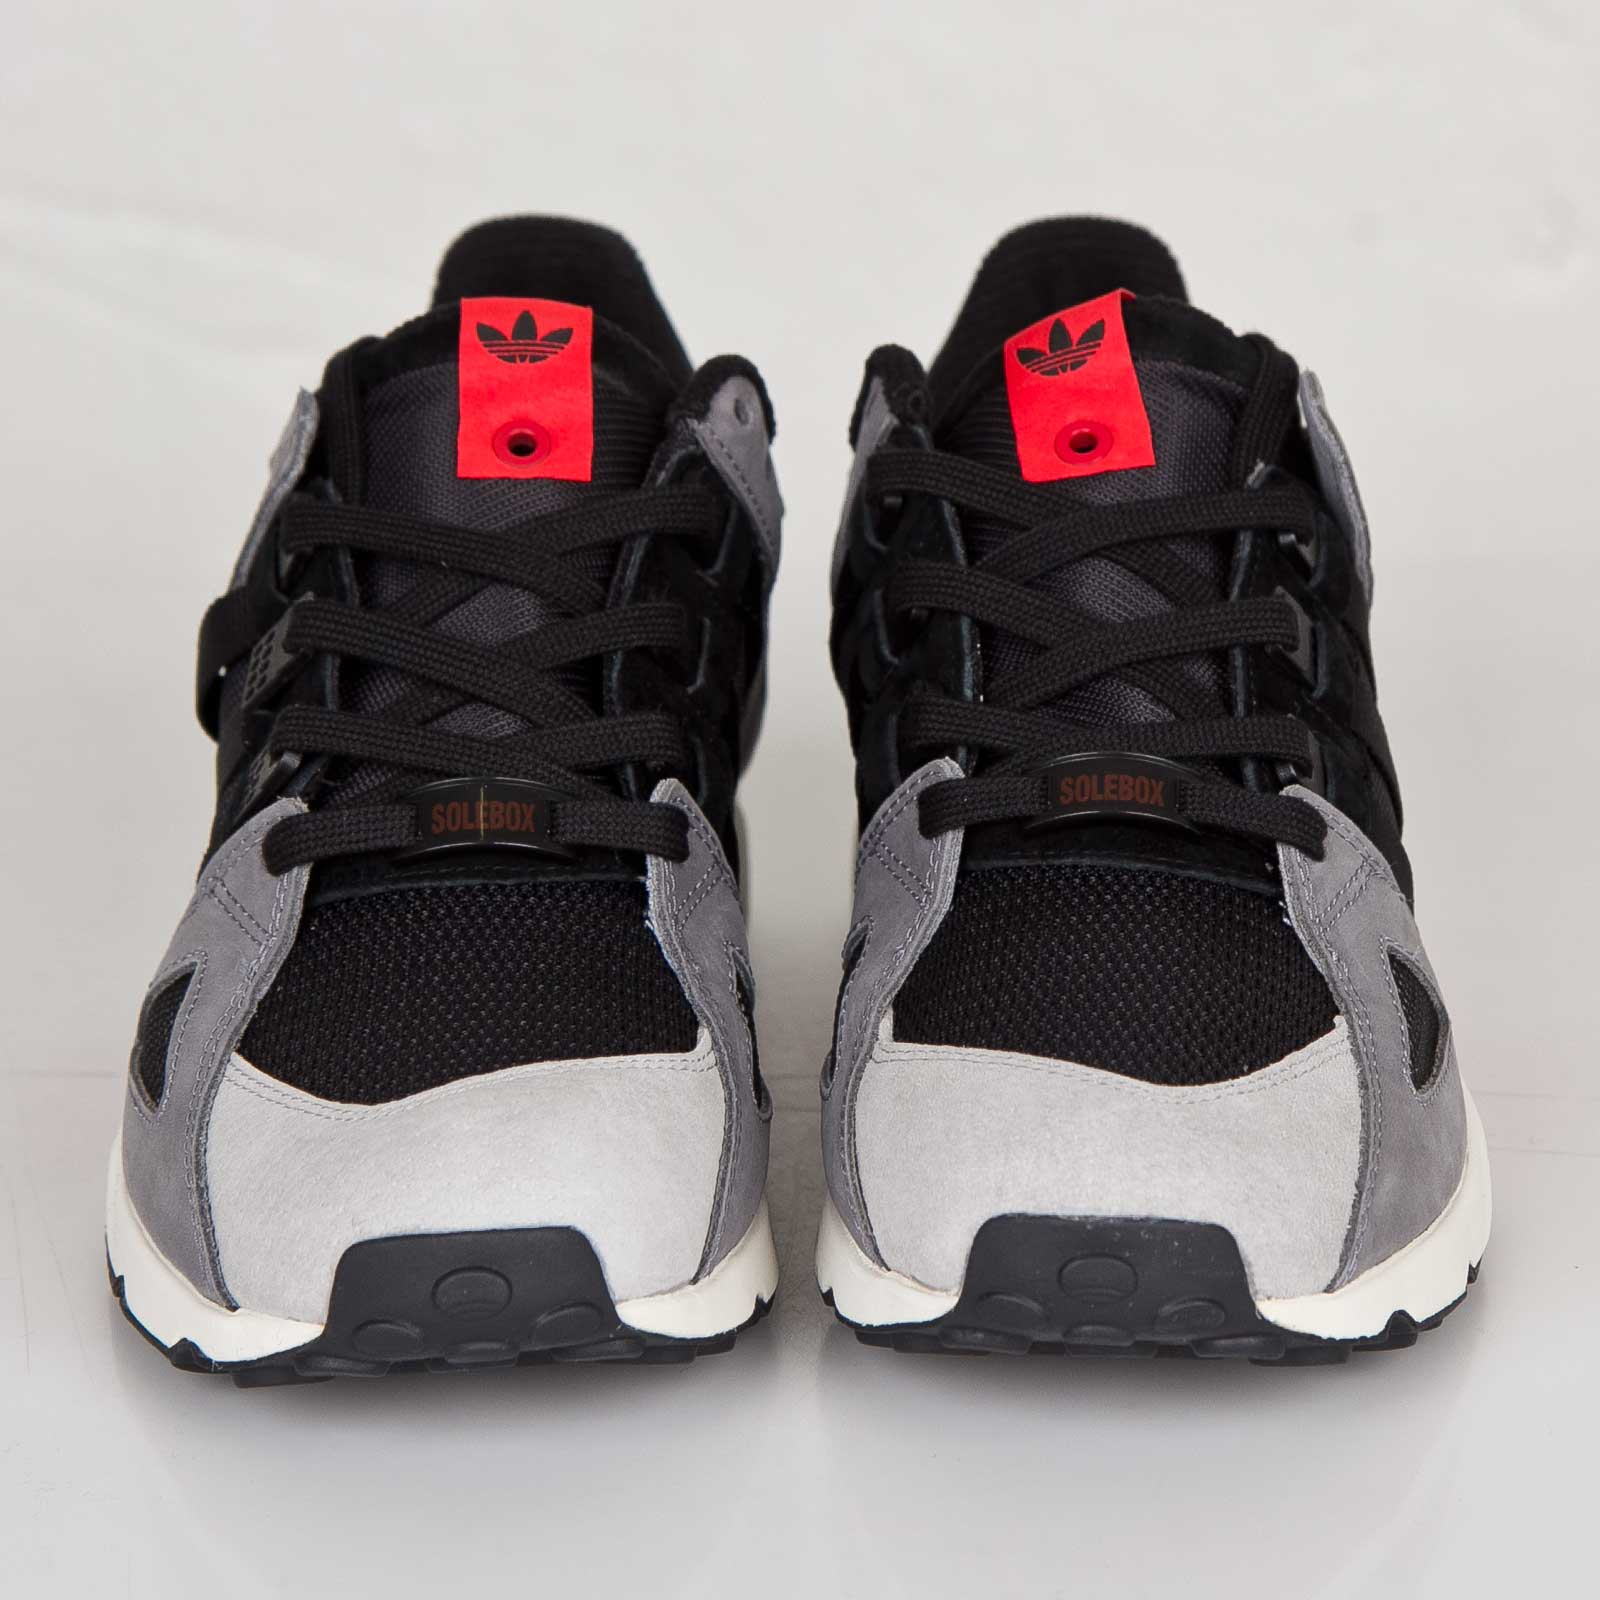 reputable site f894a 102fa adidas Equipment RNG Guidance 93 - B35714 - Sneakersnstuff   sneakers    streetwear online since 1999